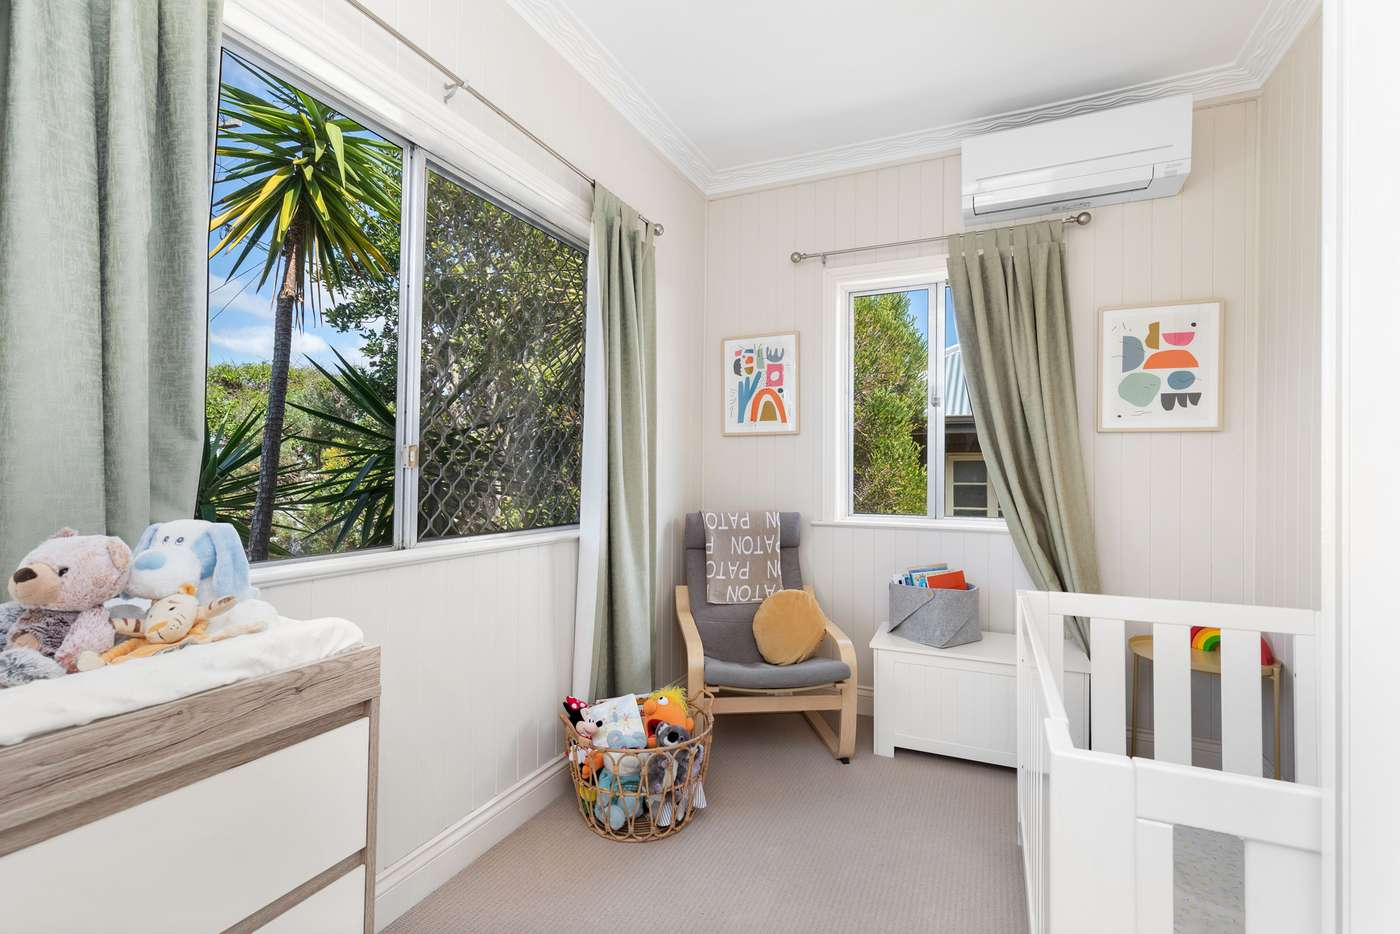 Fifth view of Homely house listing, 110 Lumley Street, Upper Mount Gravatt QLD 4122